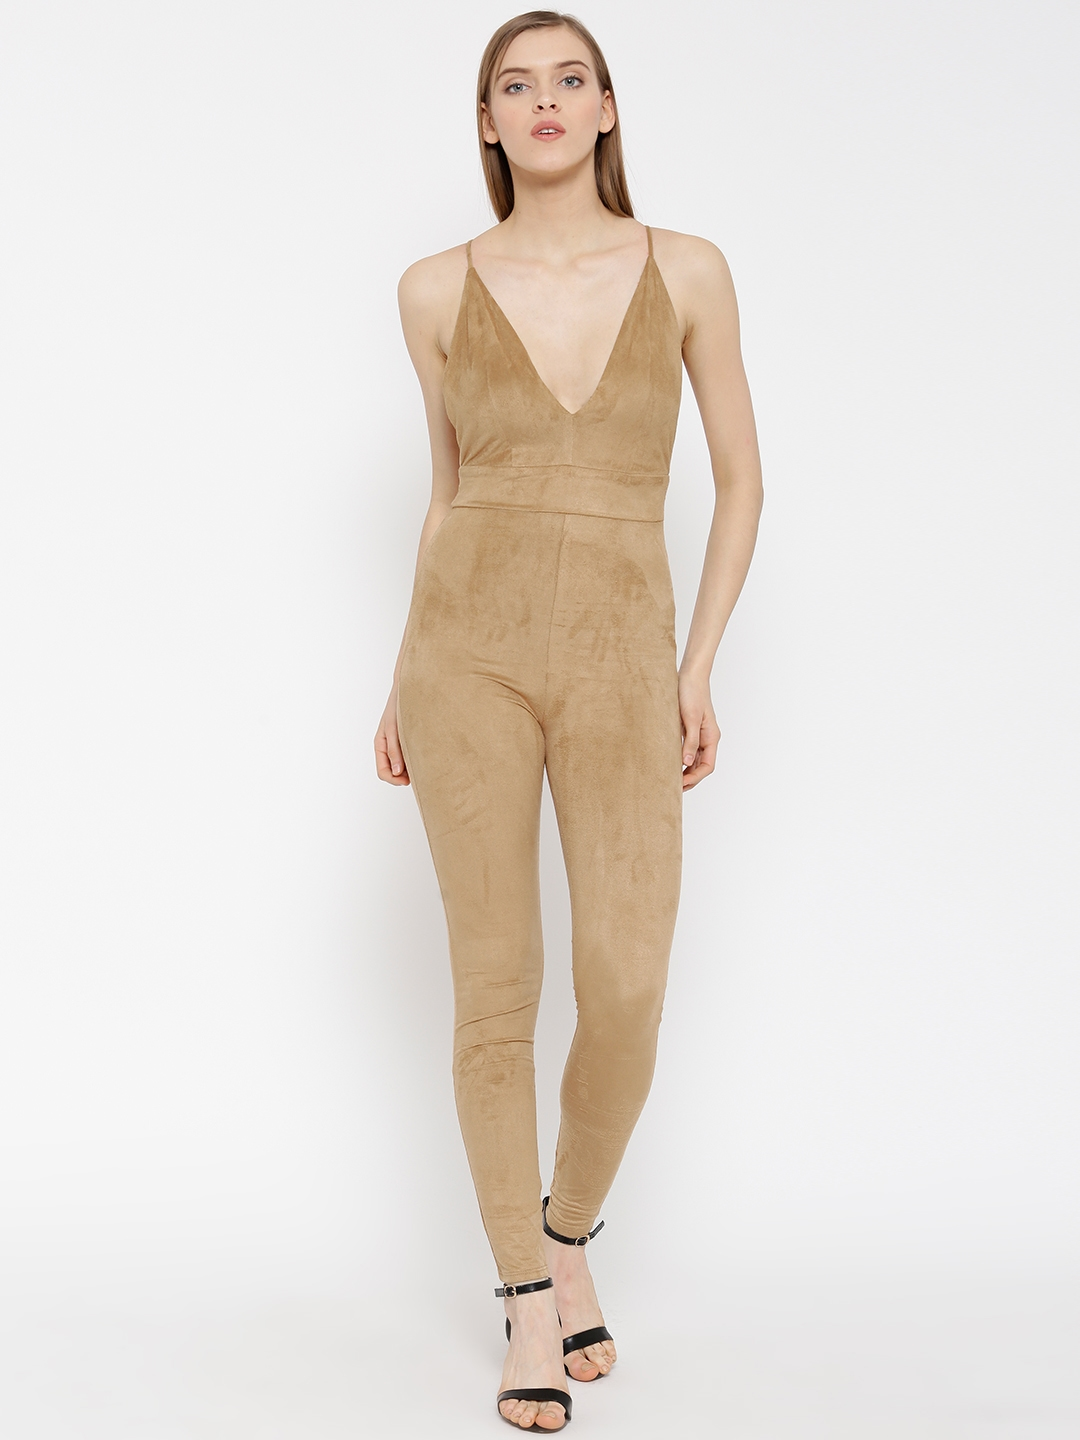 Beige Jumpsuit - Buy Beige Jumpsuit online in India